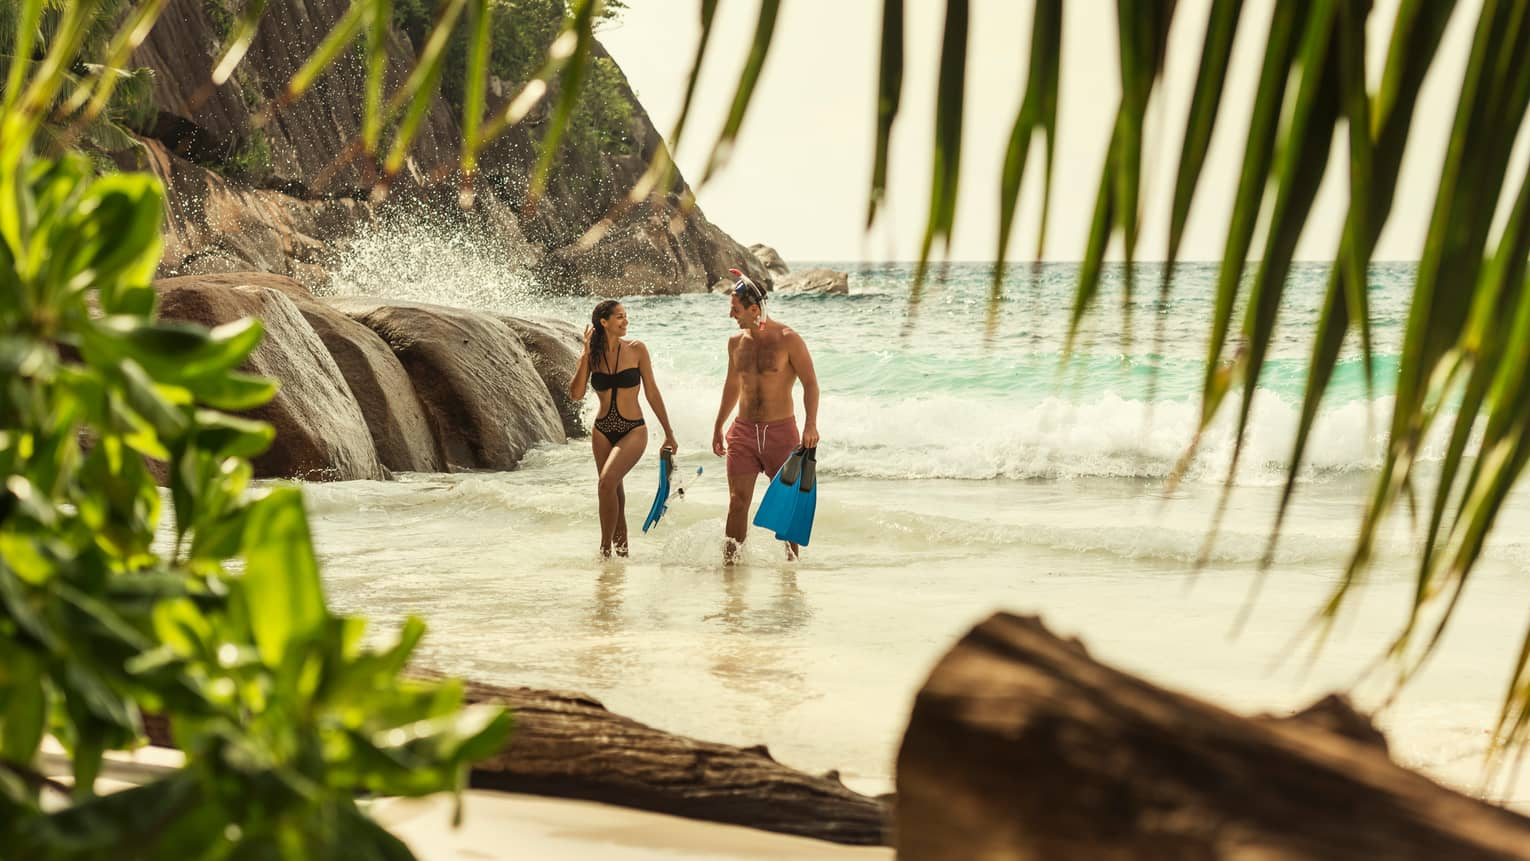 Man and woman in swimsuits hold snorkelling fins, walk through tied up to beach